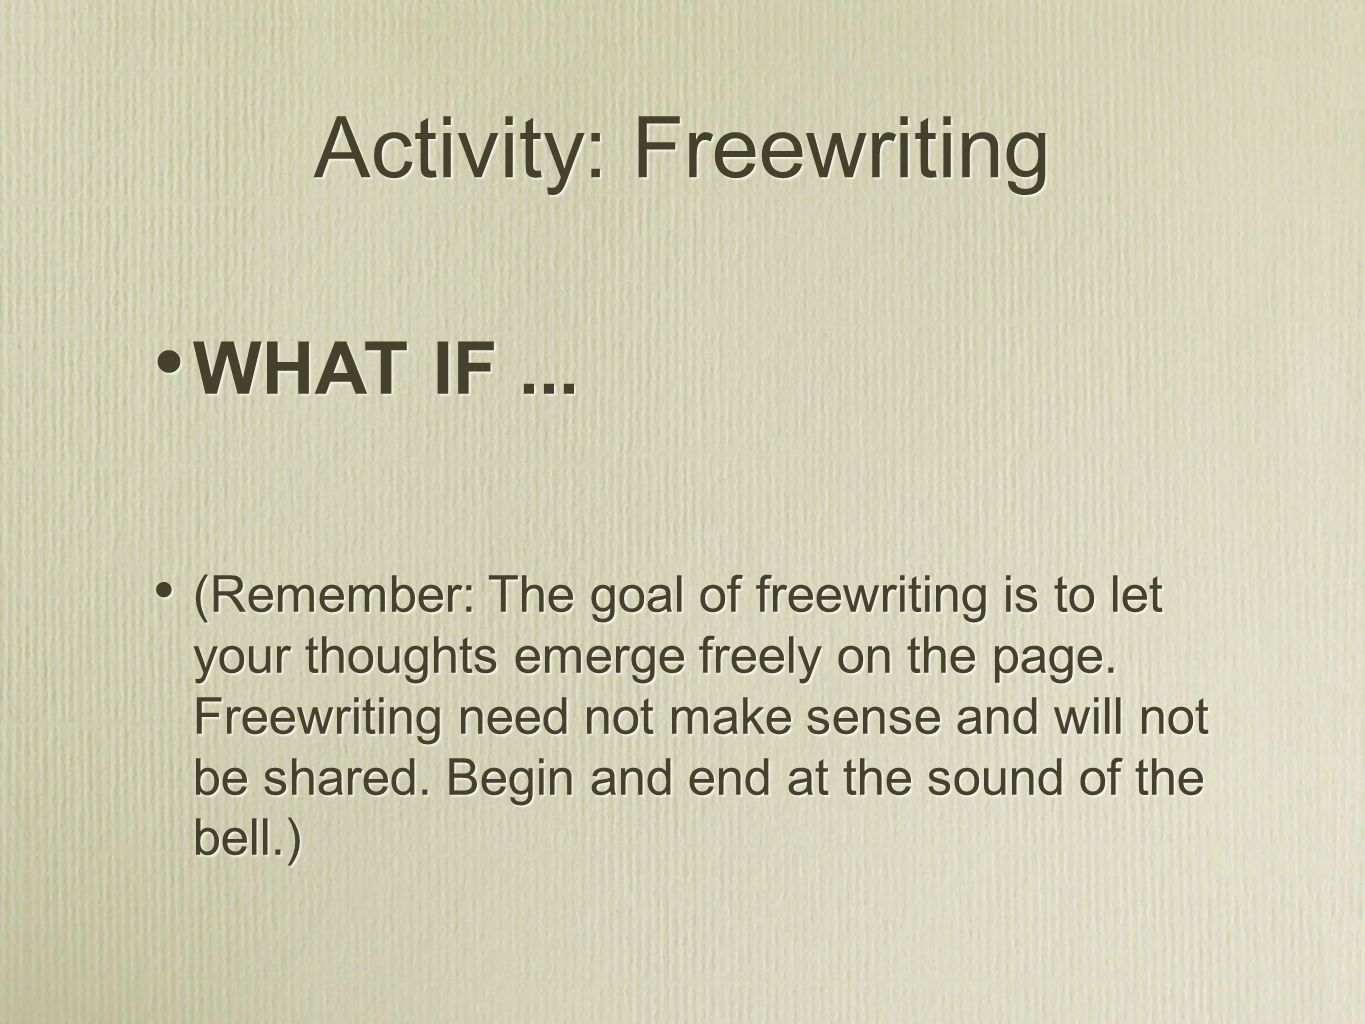 Activity: Freewriting WHAT IF...